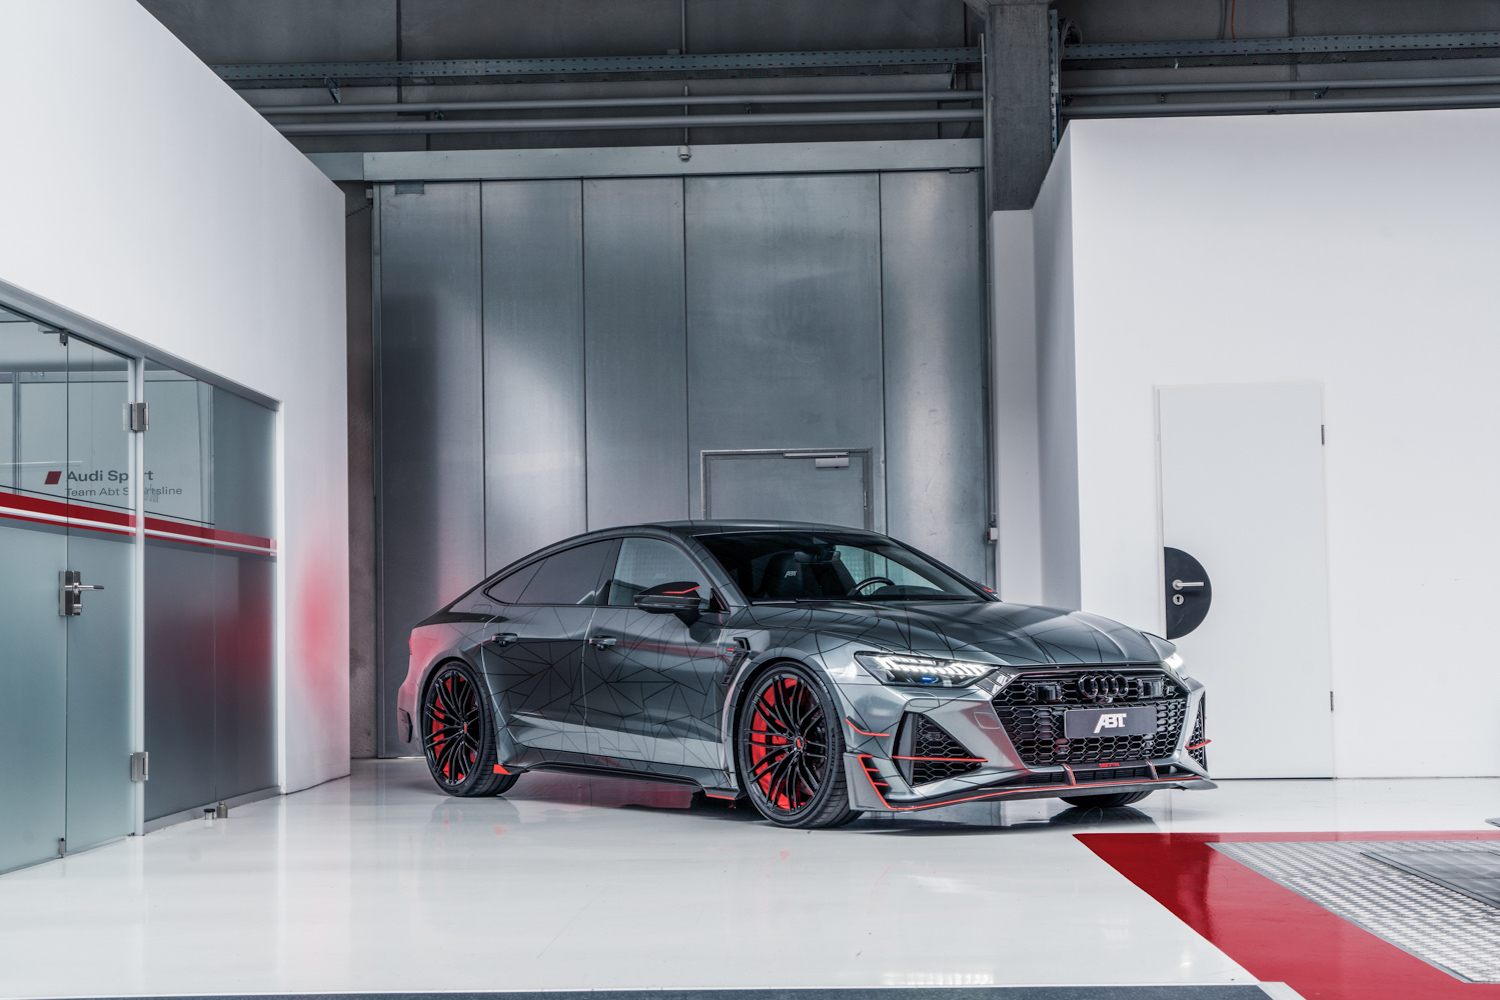 Car News | Abt boosts Audi RS 7 to 740hp | CompleteCar.ie